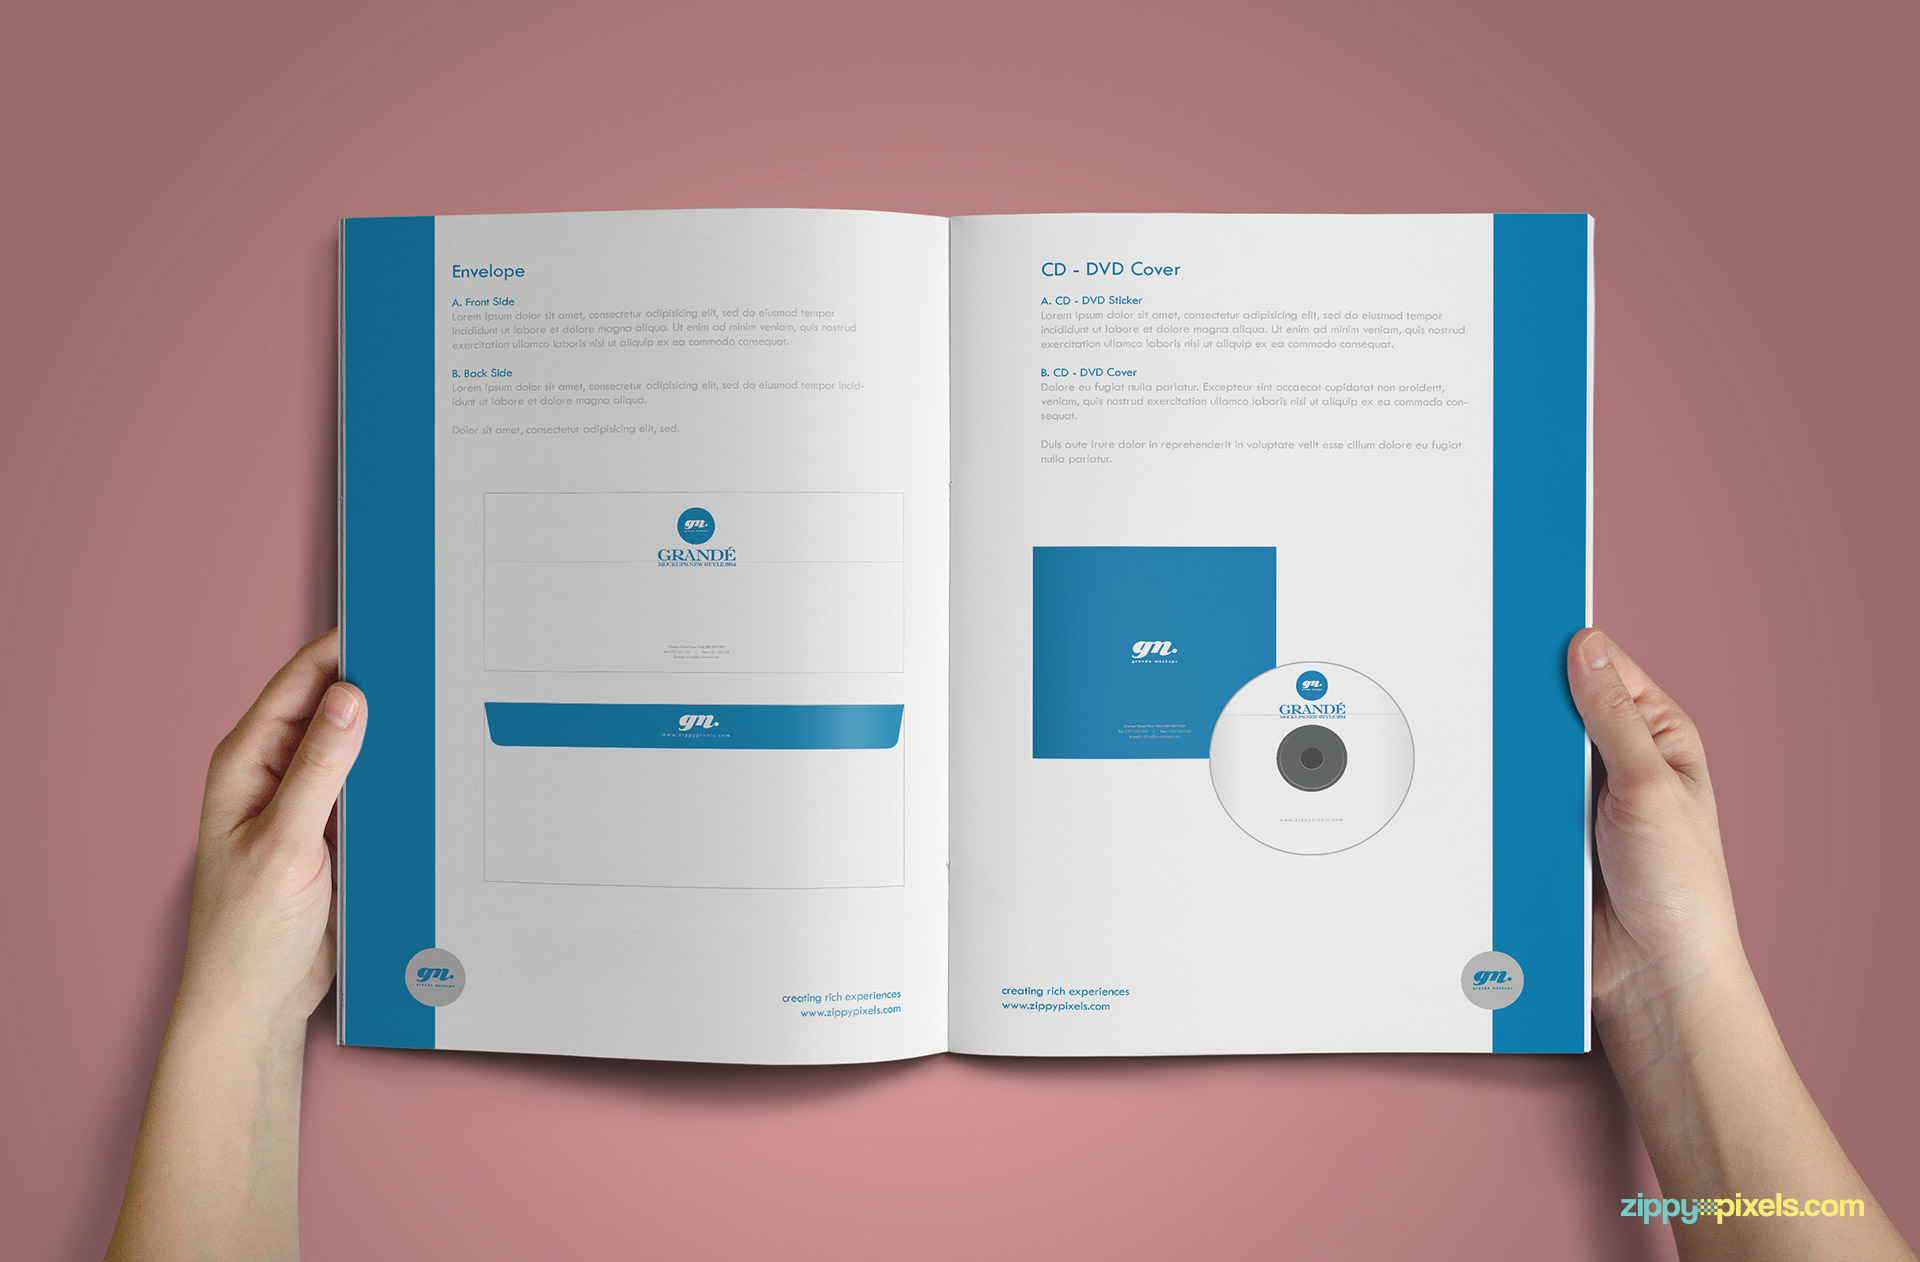 Clean Brand Book Template for Corprate Identity - CD Cover & Envelope